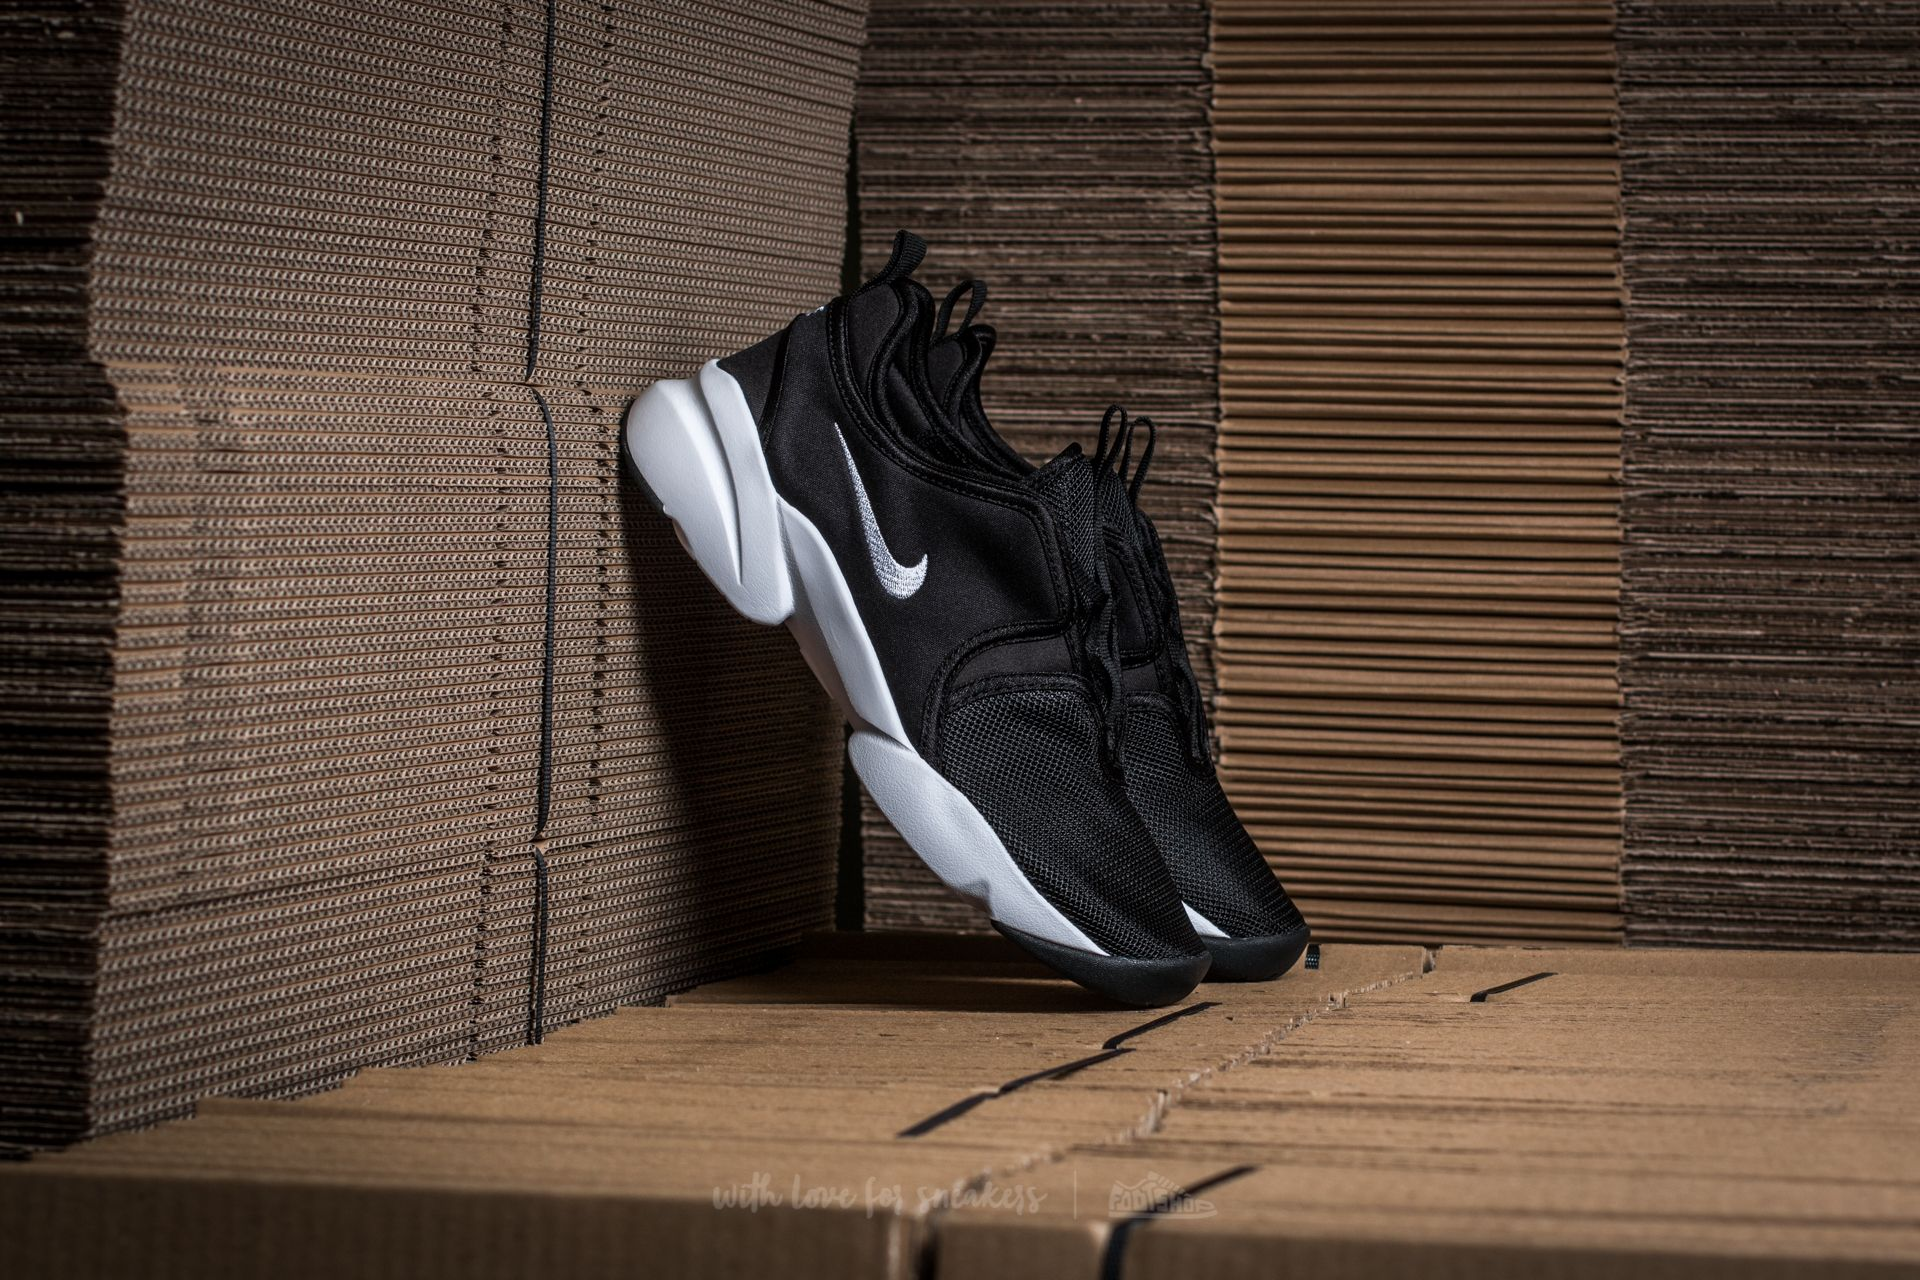 new arrival a899d 794cd Nike W Loden. Black White-White